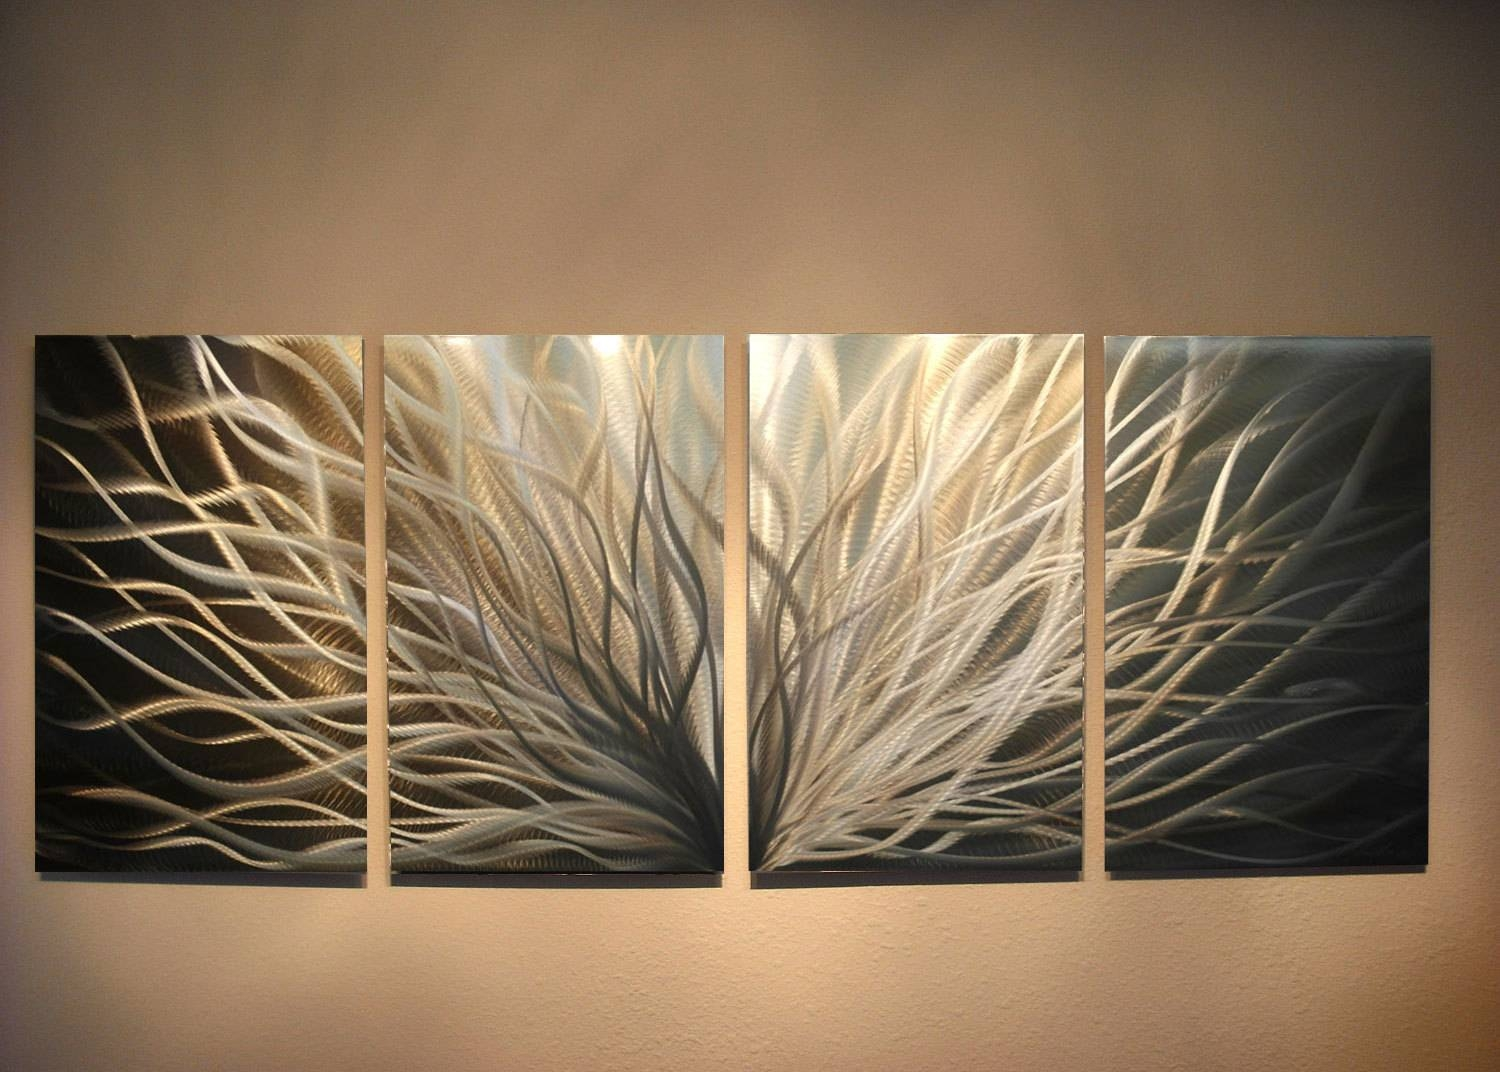 Metal Art Wall Art Decor Aluminum Abstract Contemporary Modern For Most Recently Released Metal Wall Art Decor (View 9 of 20)